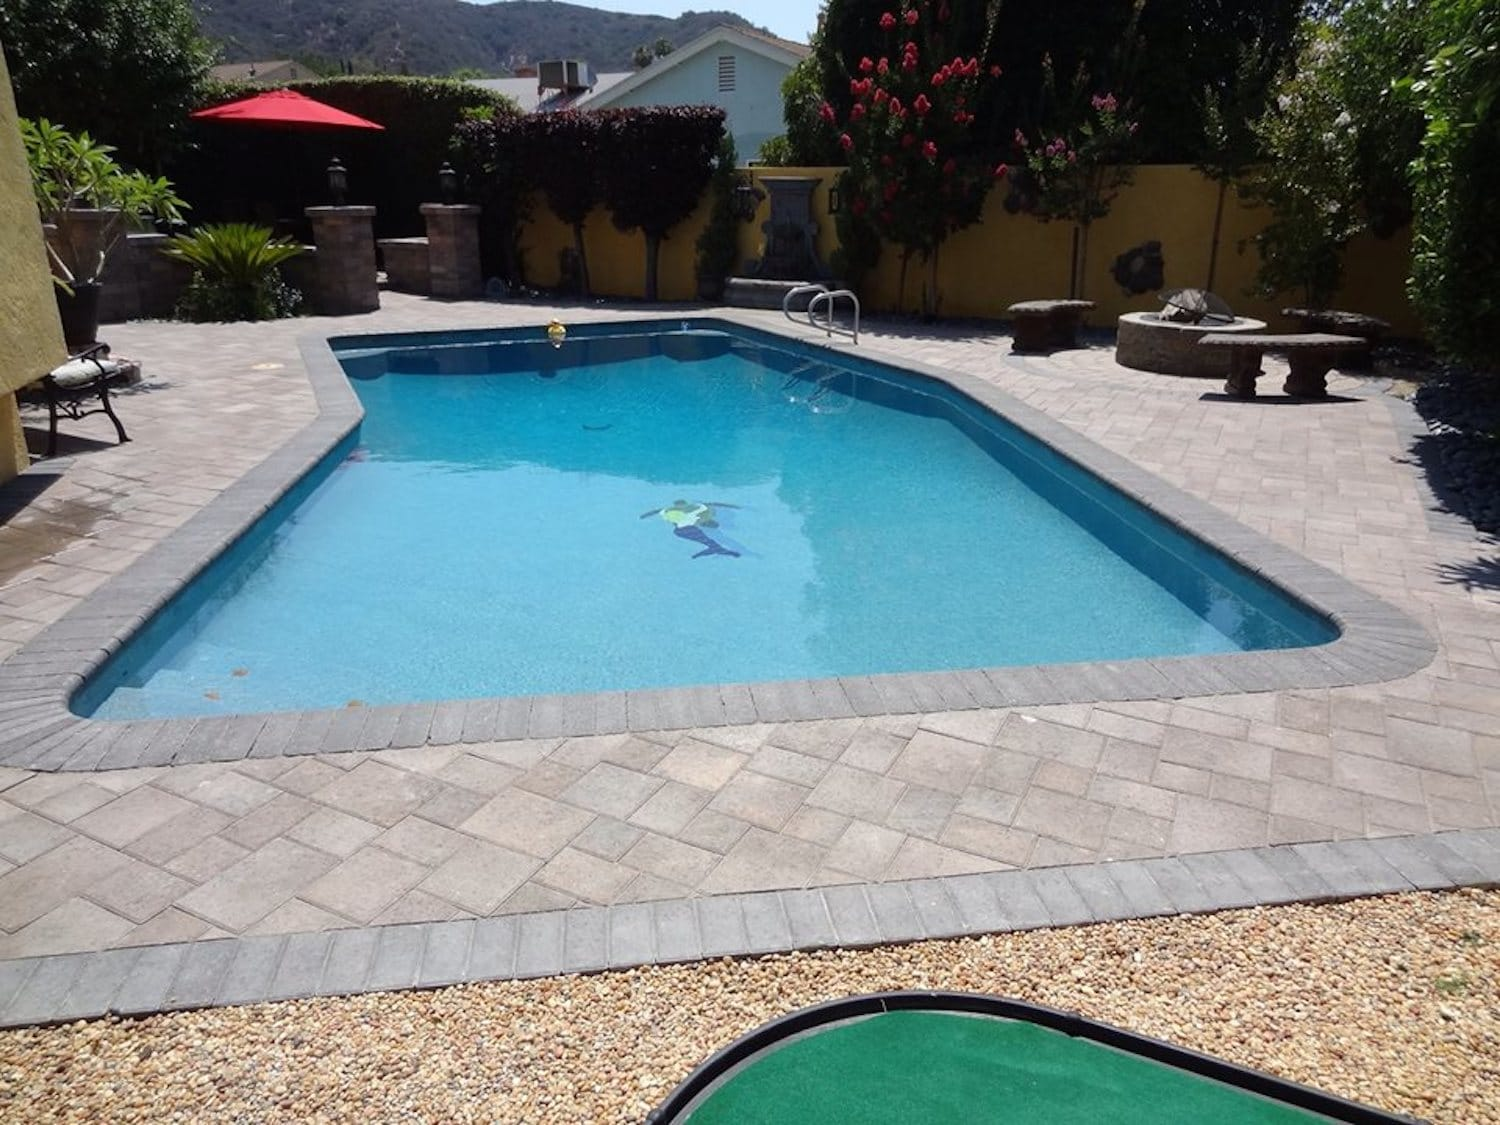 satin-matrix-antigua-pool-finish-13